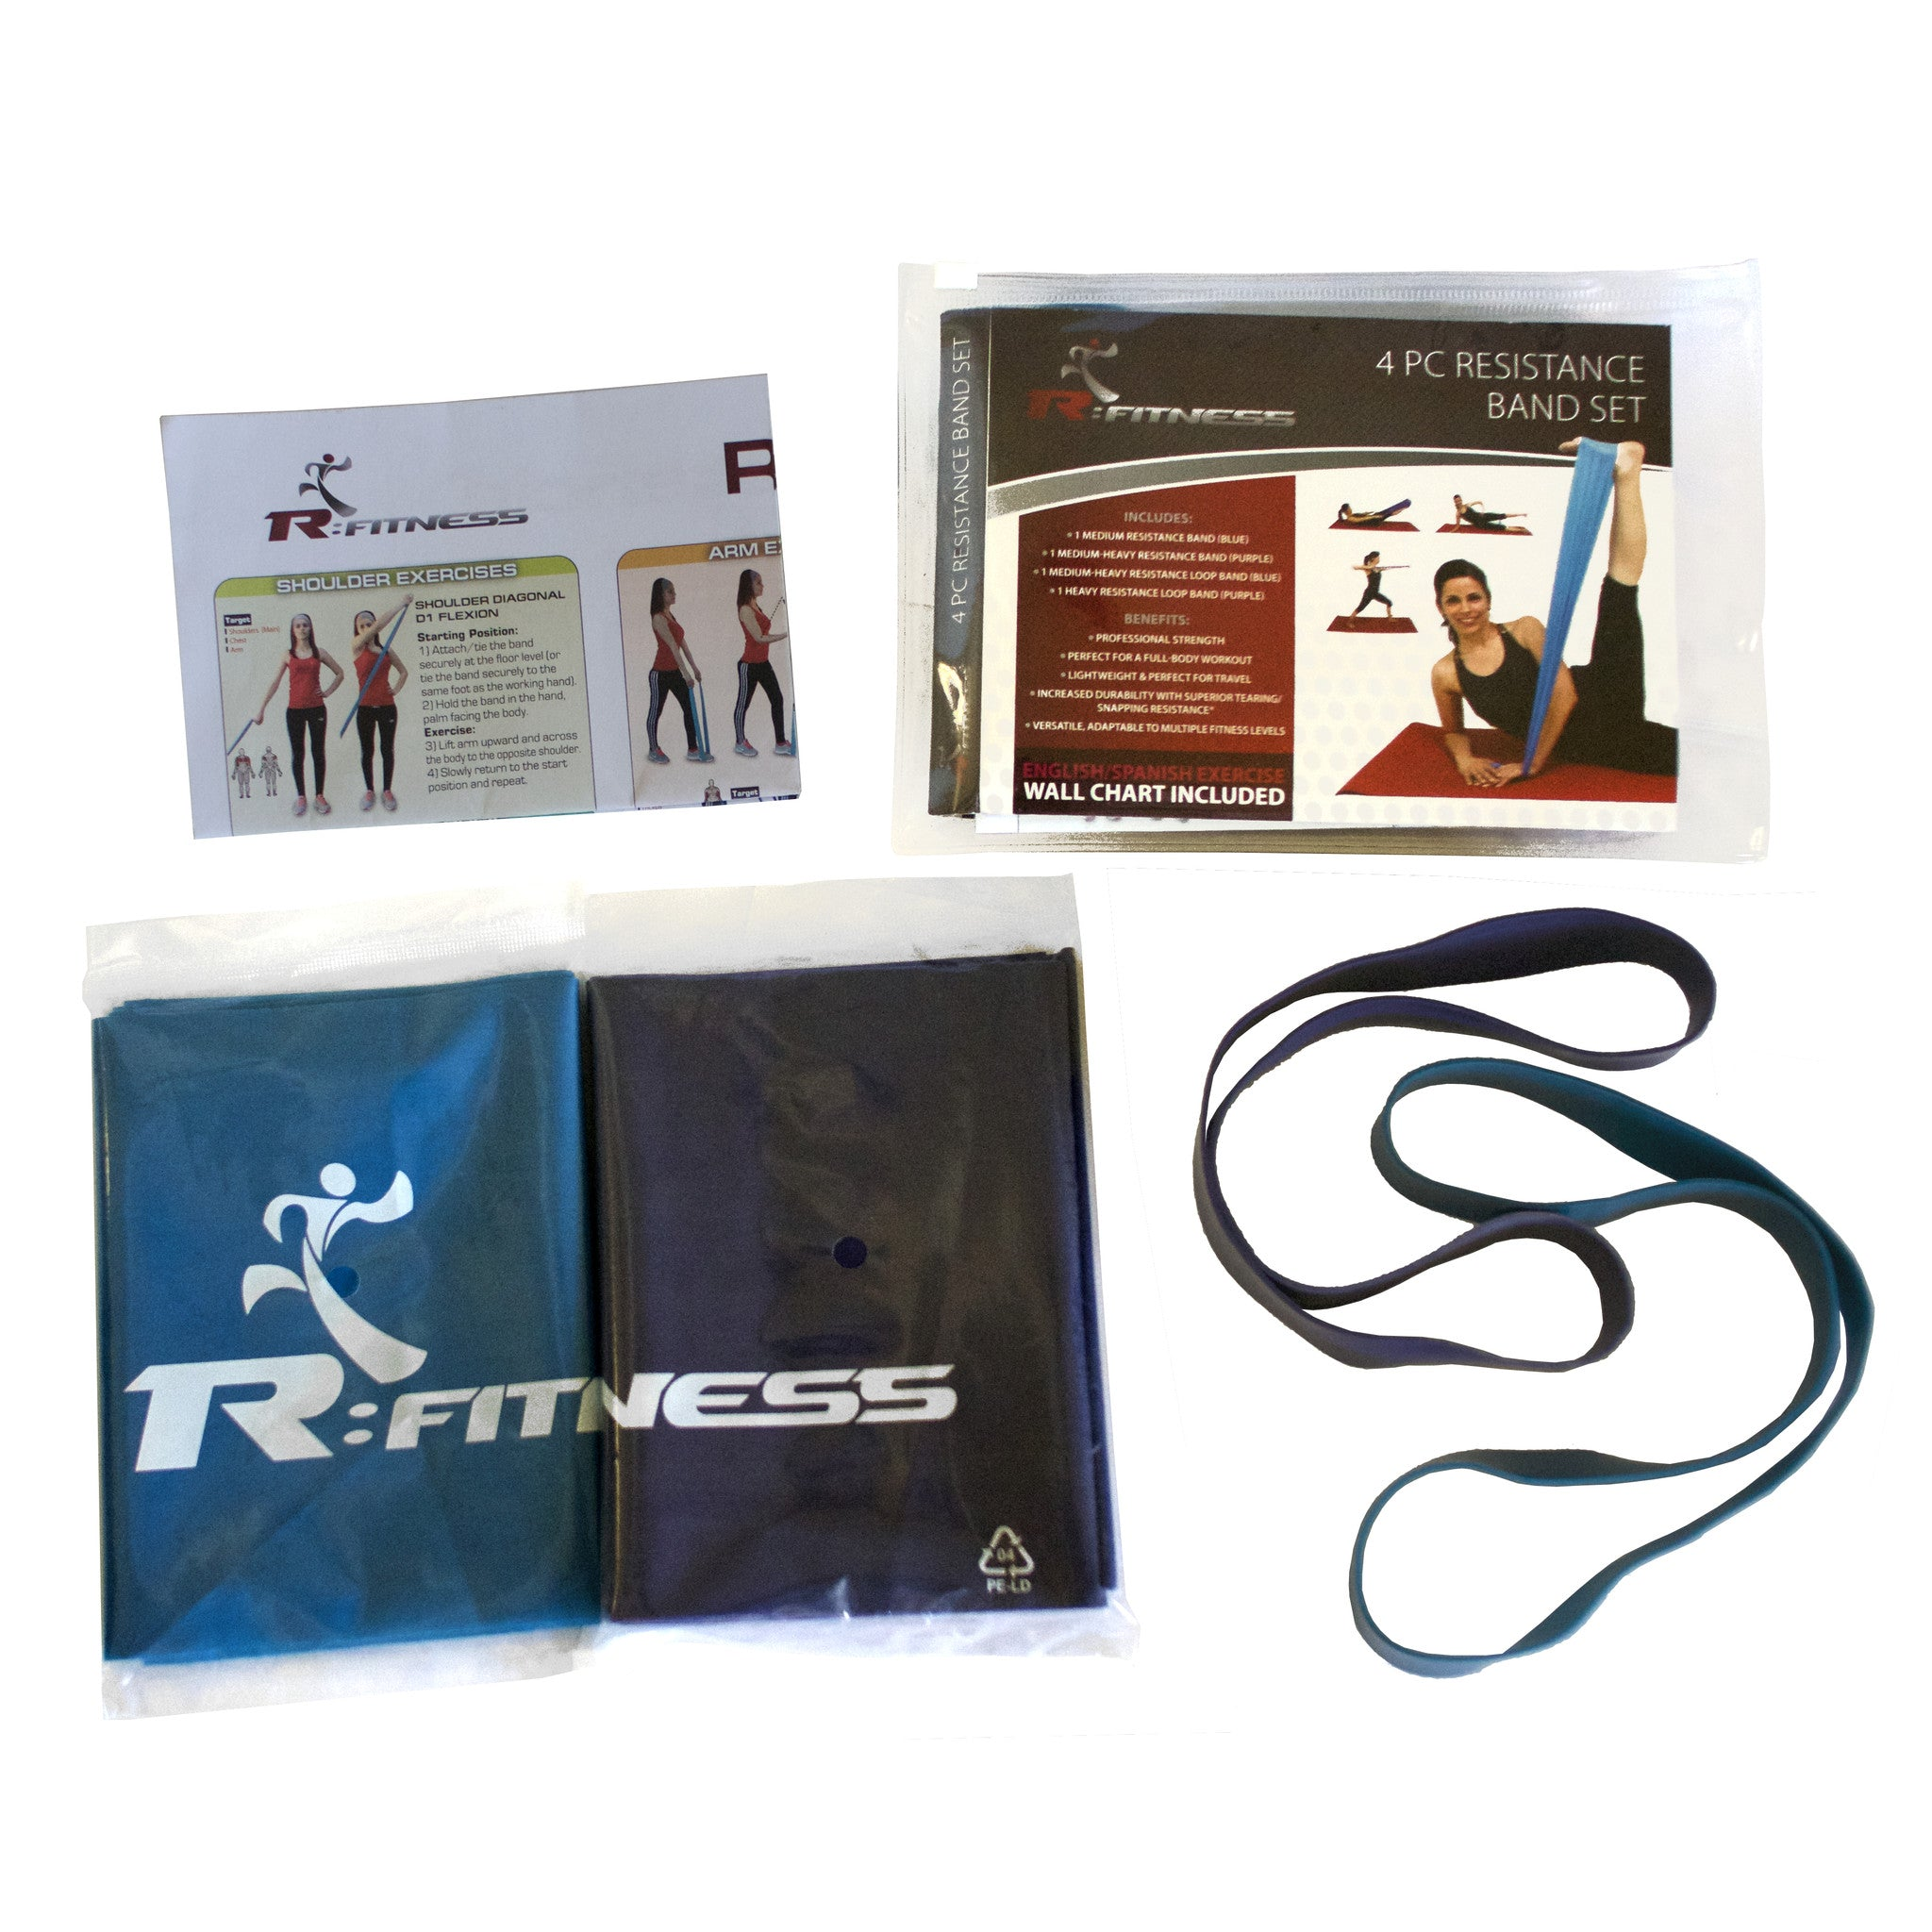 R:Fitness 4pc Resistance Band Set